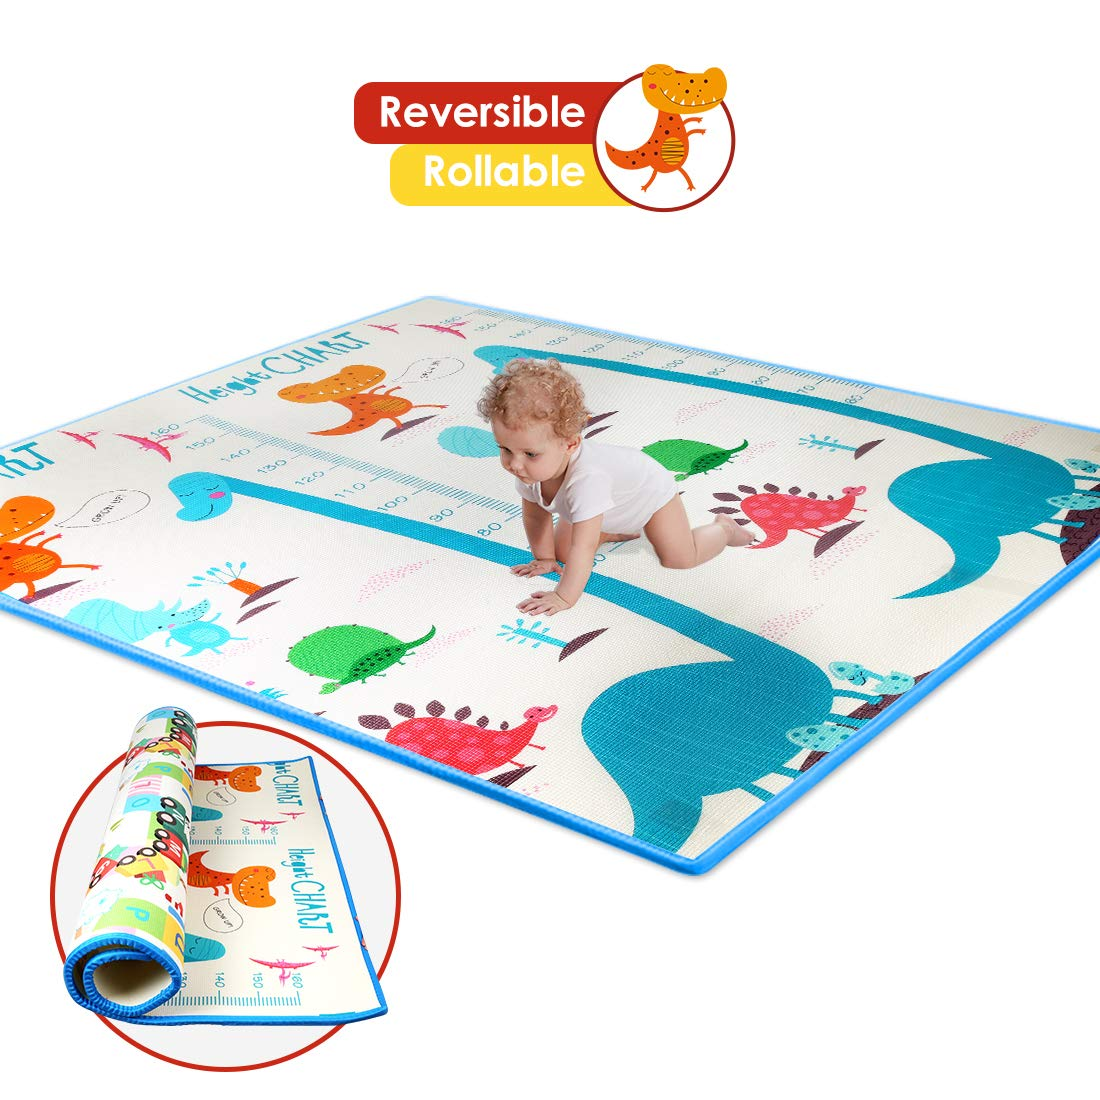 Thick Baby Play Mat, One-Piece Reversible Kids Play Mat XPE Foam, Large Play Mat for Kids Playing or Crawling, Waterproof Nontoxic Foam Playmat for Infants Baby Toddler Large, Dinosaur Train